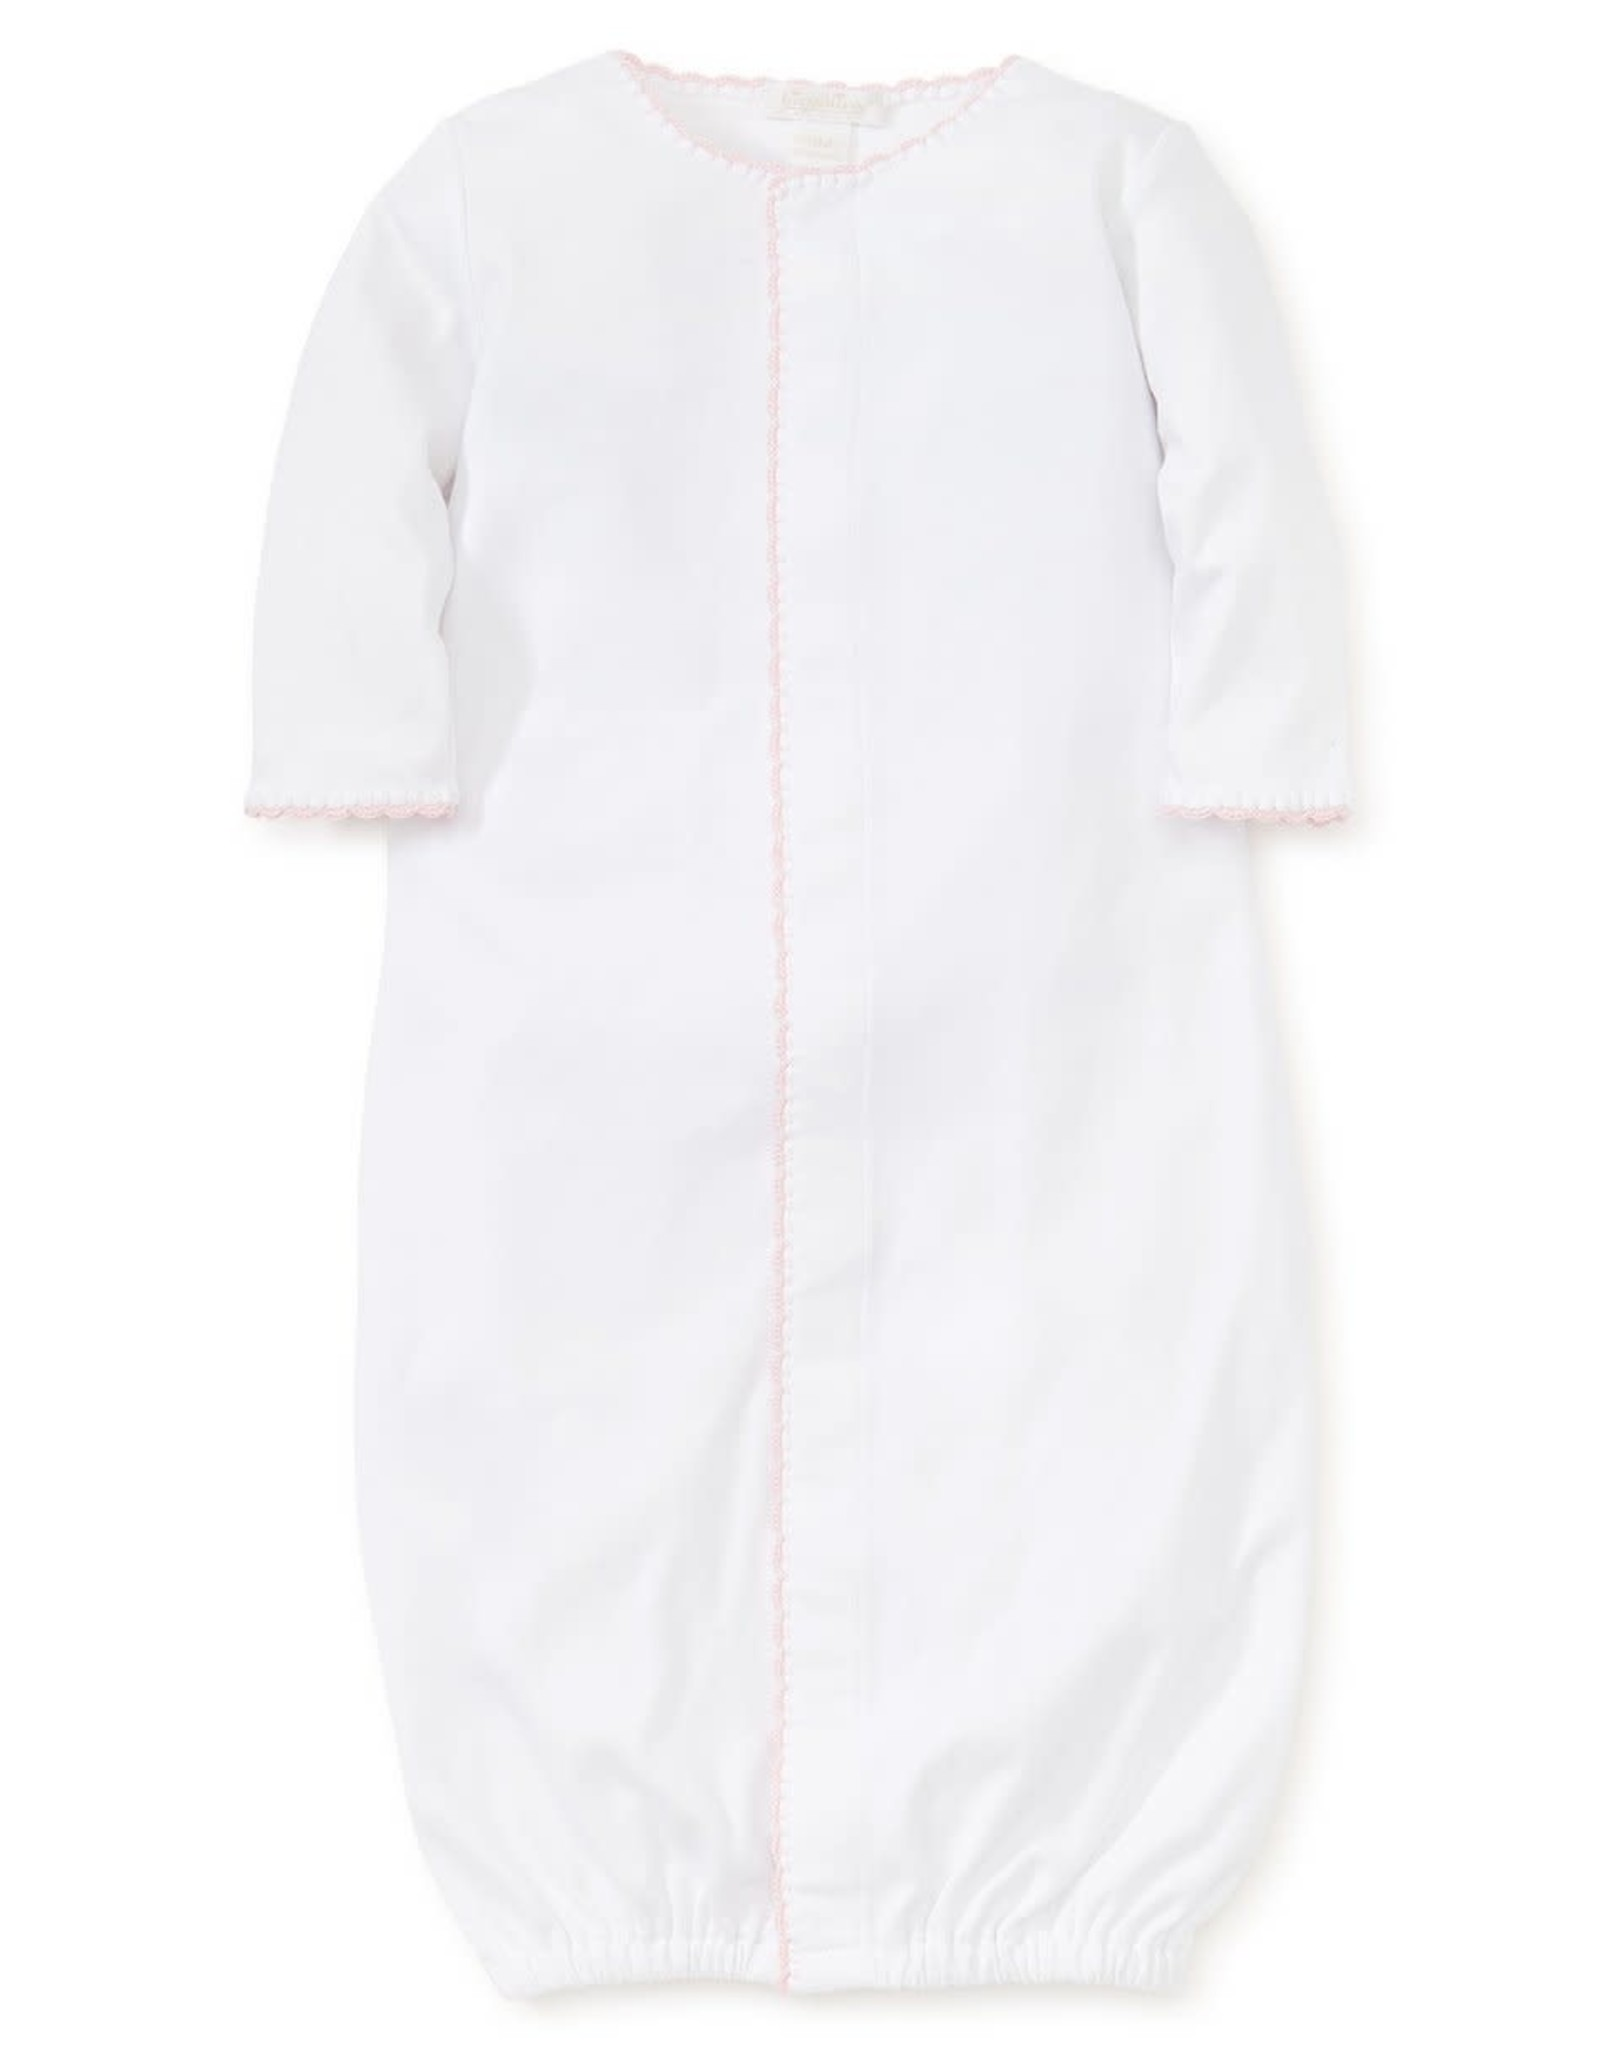 KissyKissy Gown White Premier Embroidered Edge